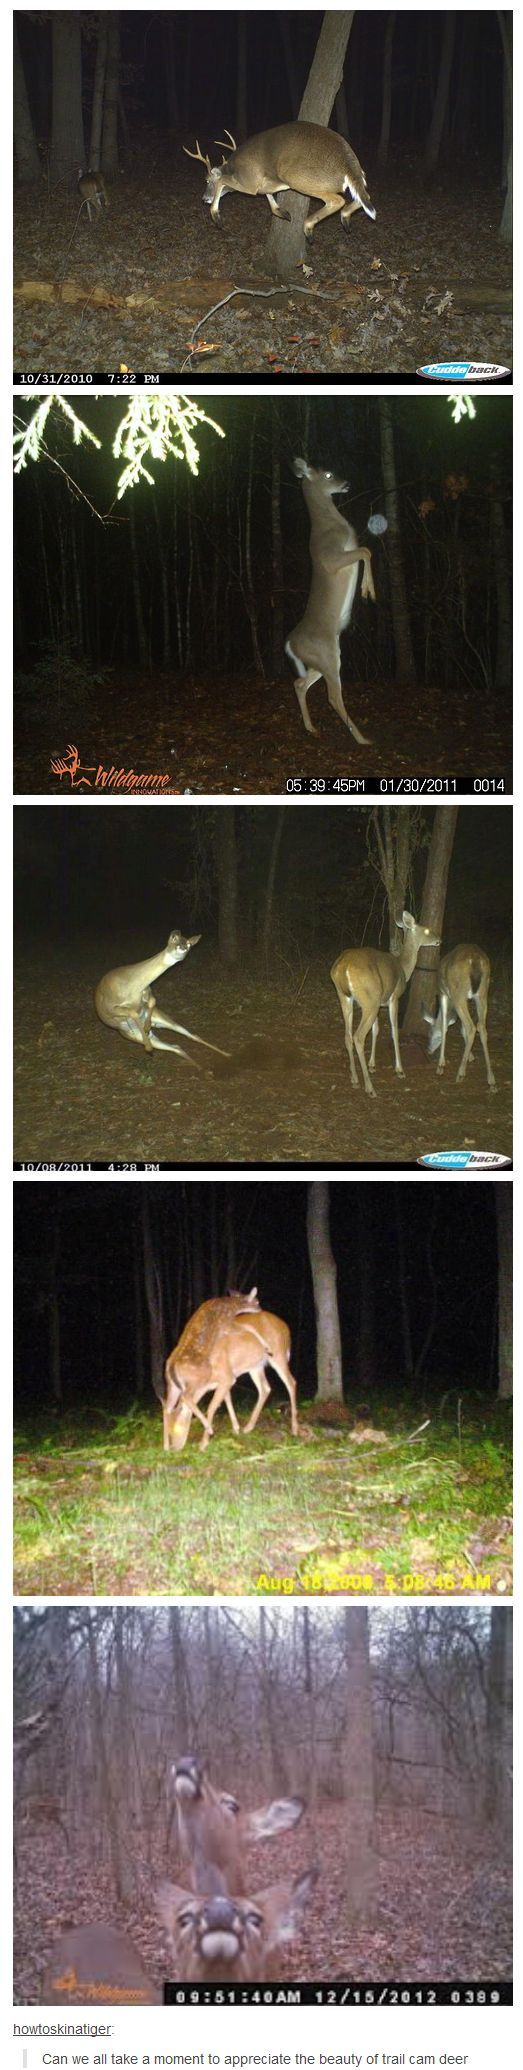 The antics of the trail cam deer.